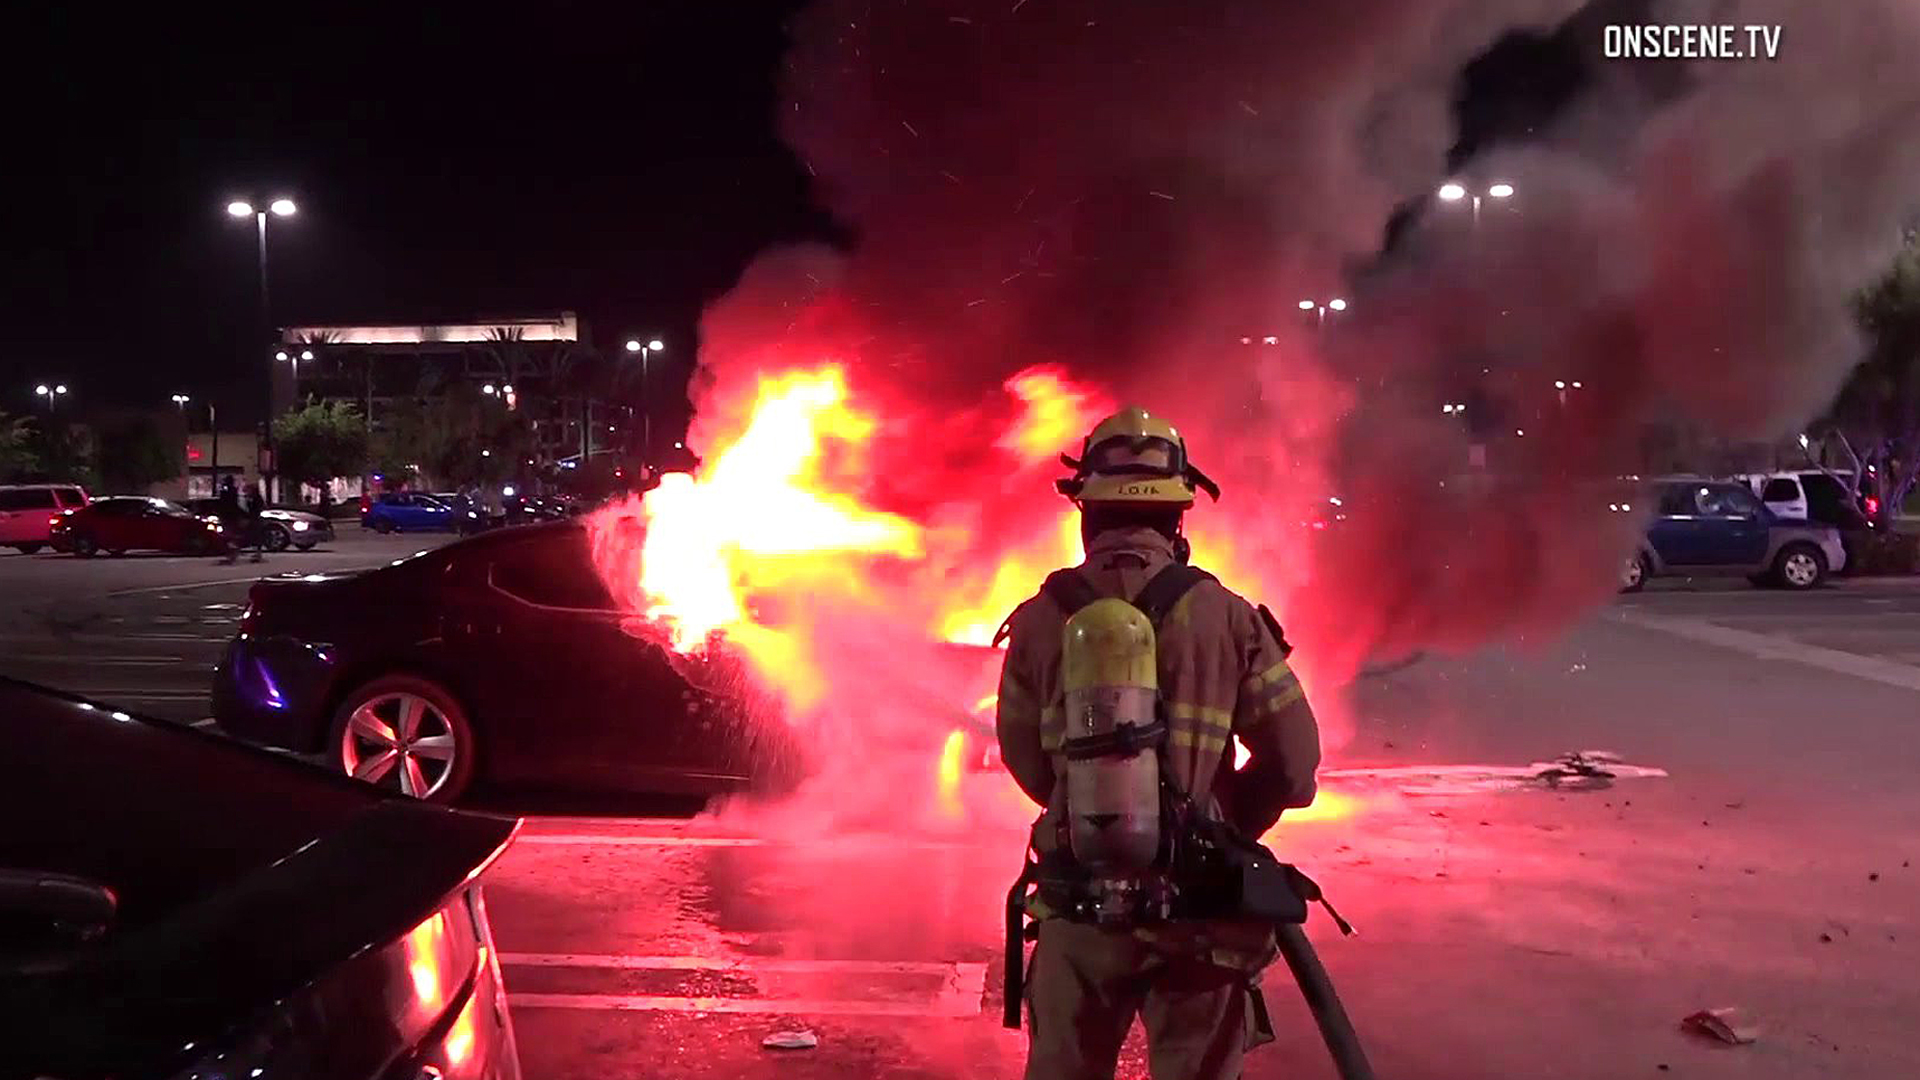 Firefighters respond to a car fire in Anaheim on June 11, 2018. (Credit: OnScene.TV)